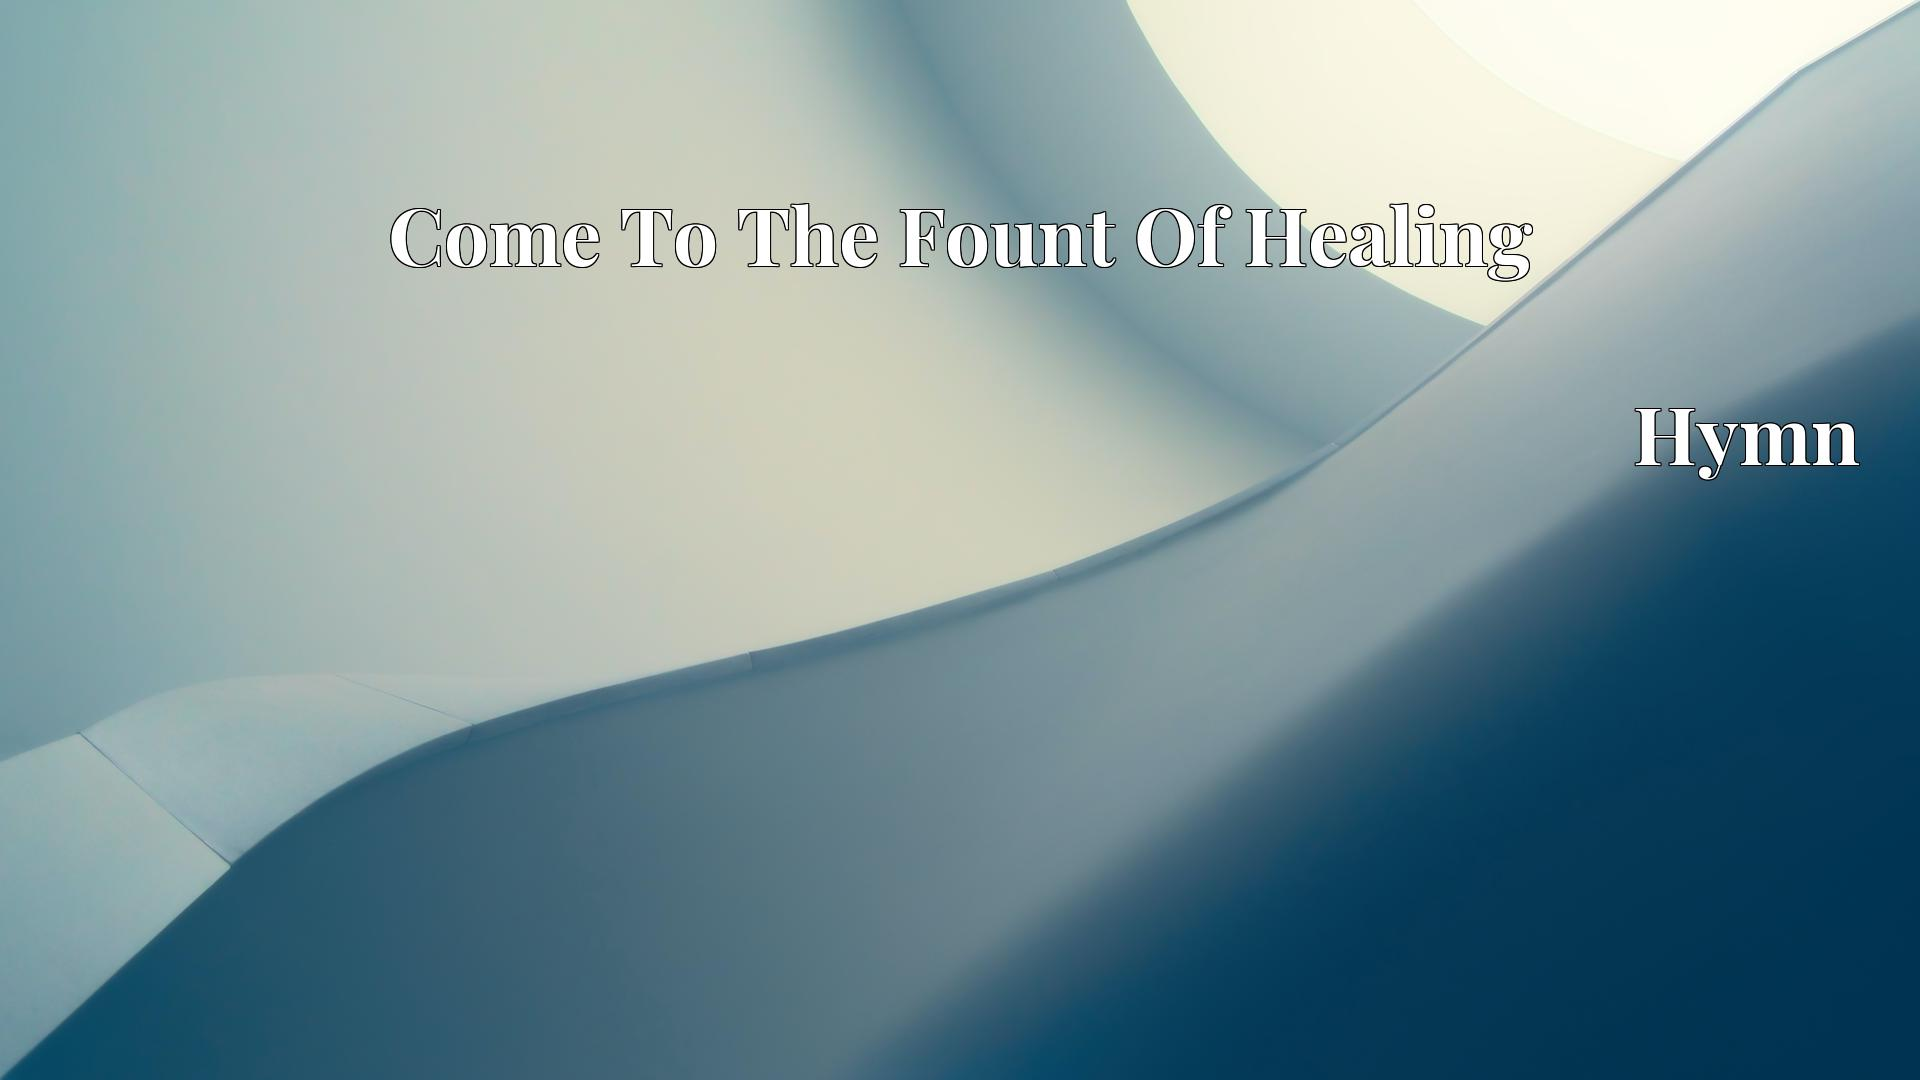 Come To The Fount Of Healing - Hymn